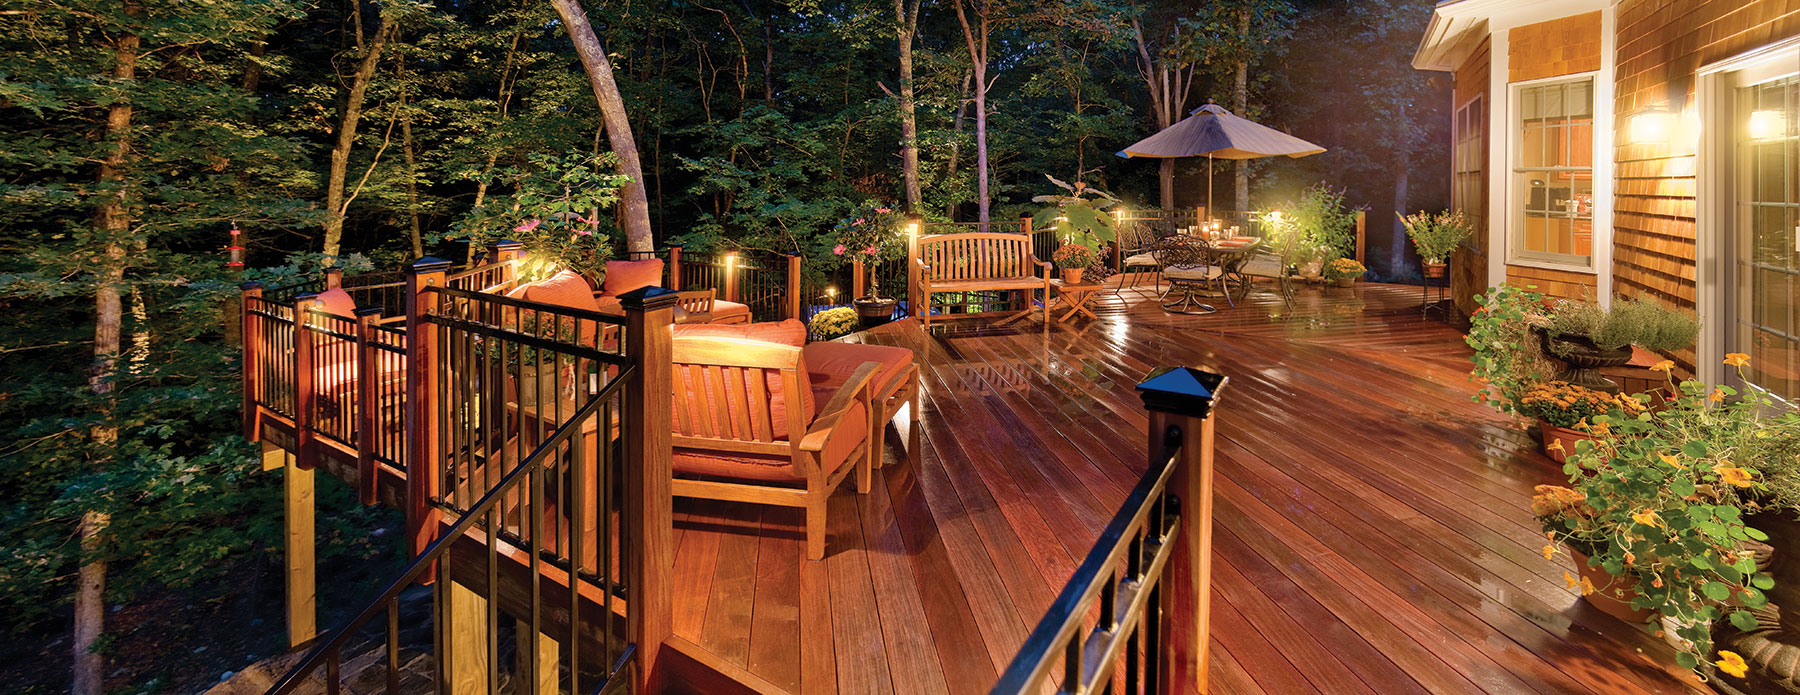 Seattle Deck Lighting & Seattle Patio Lighting and Deck Lighting